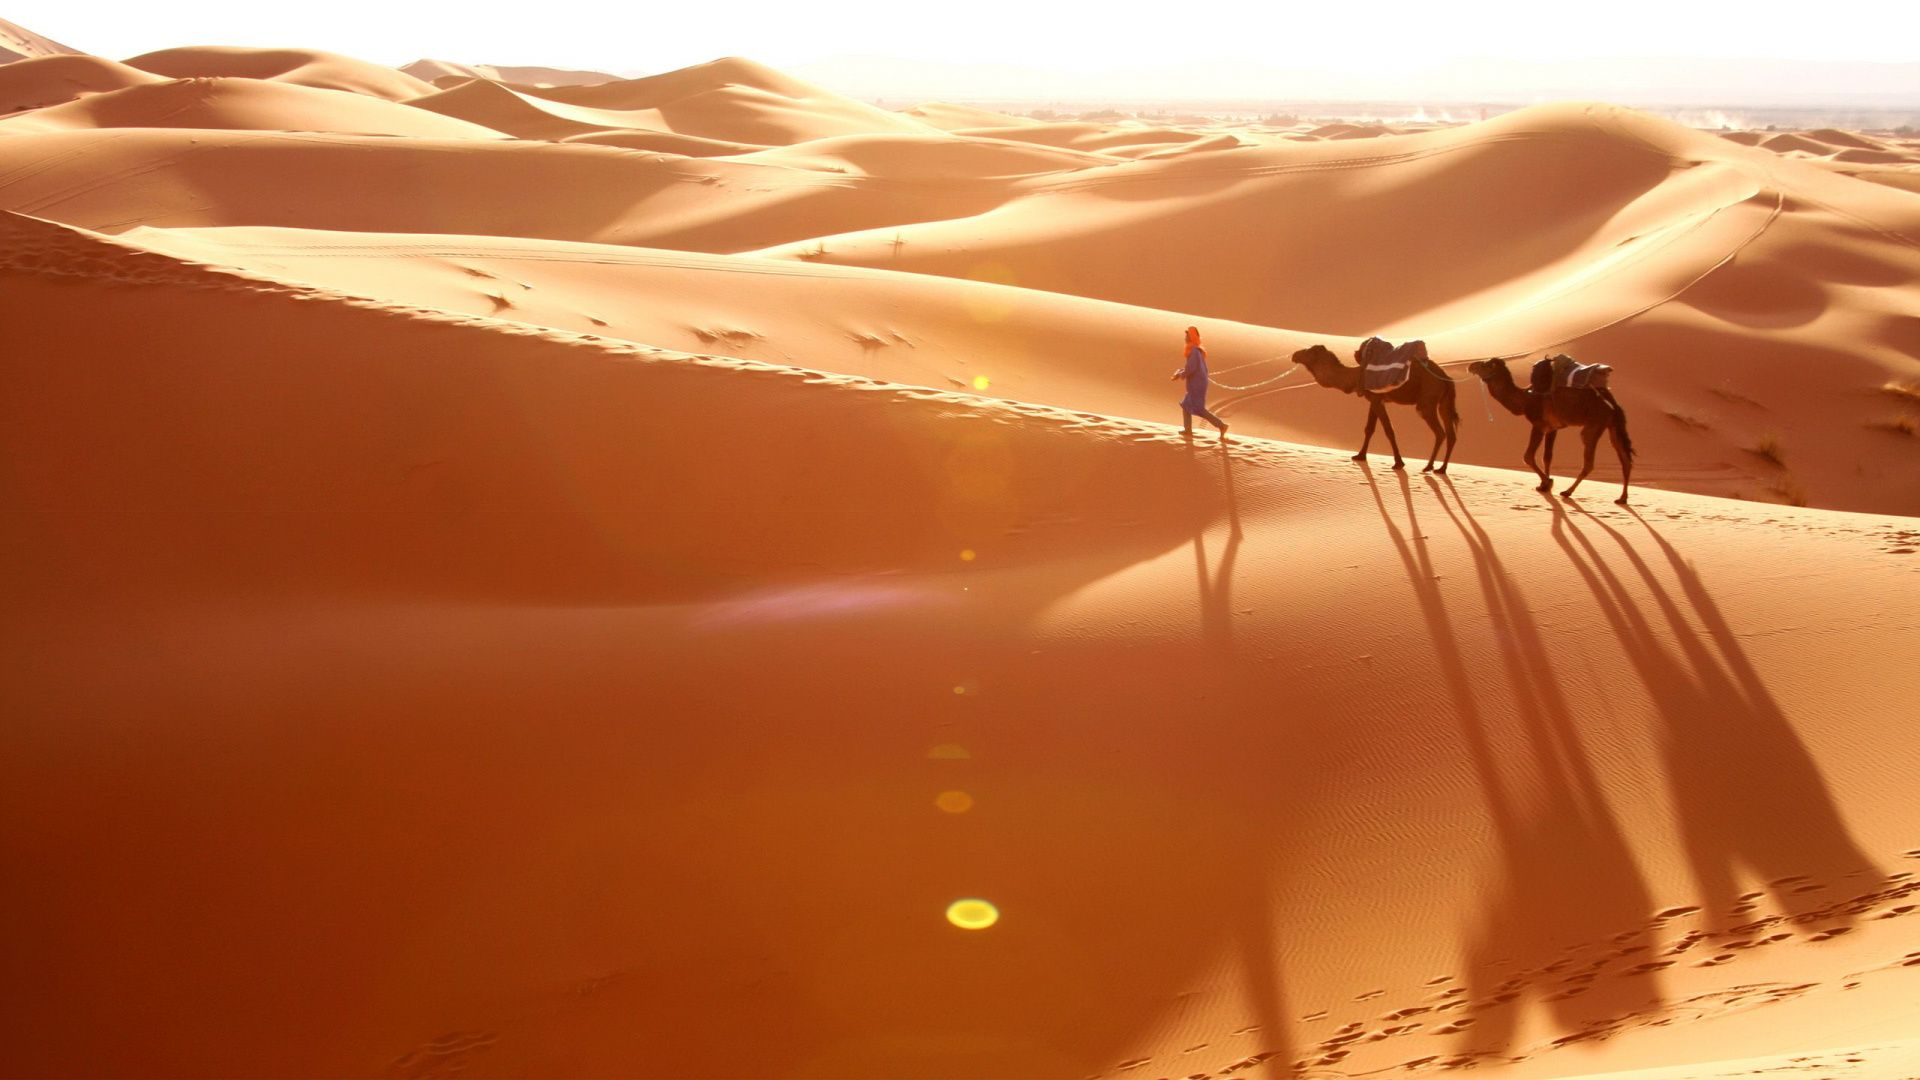 Photo Of The Desert With Camels